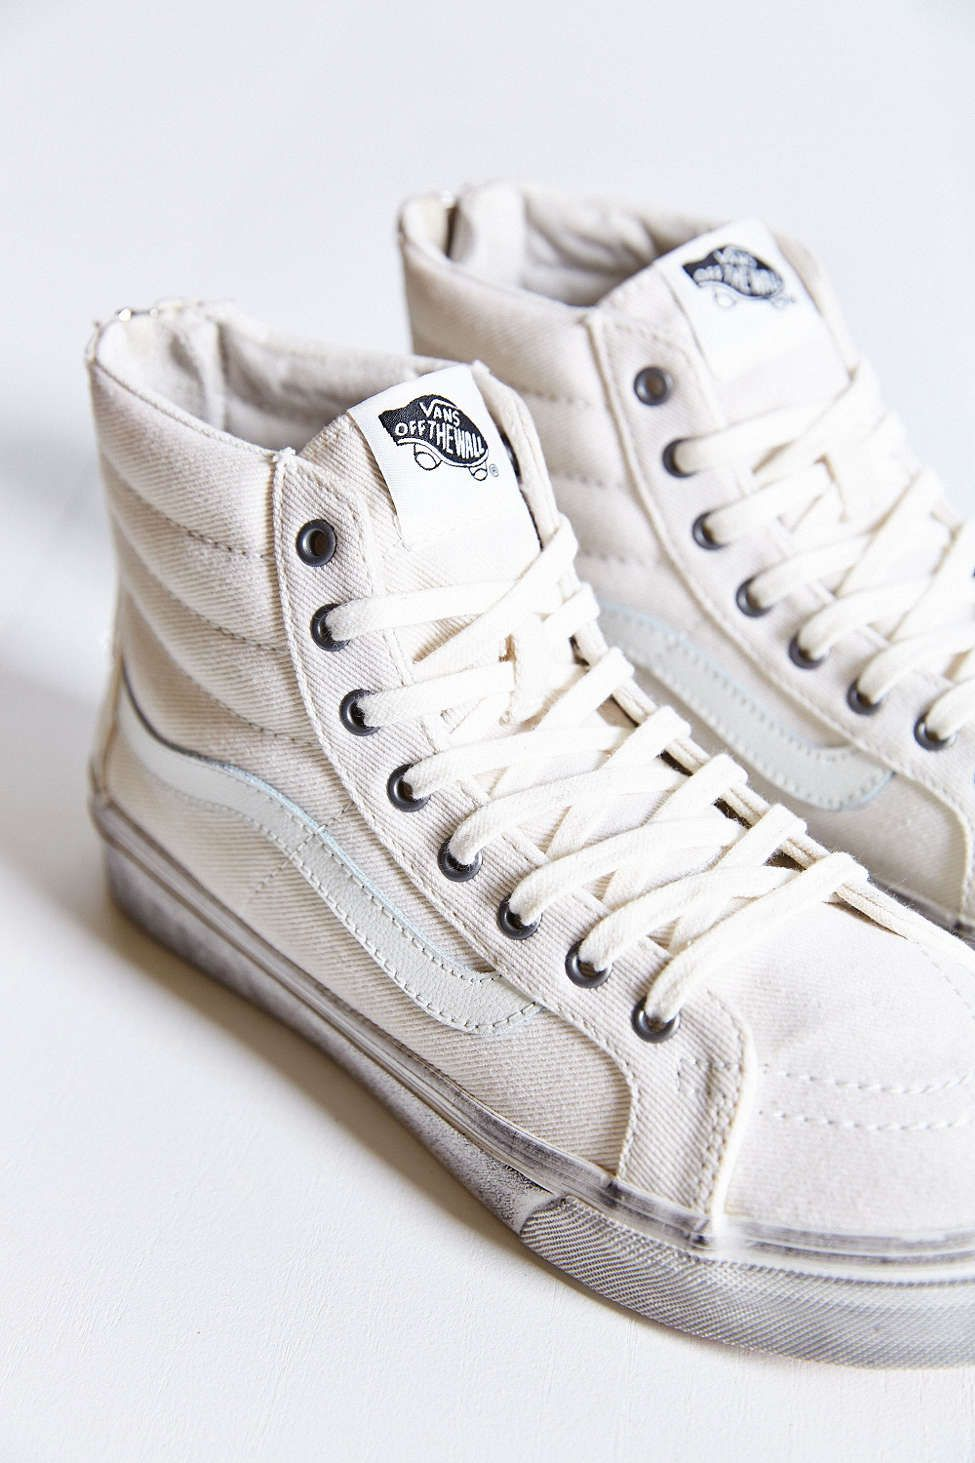 c086ee84283913 Vans Sk8-Hi Overwash Slim Zip Sneaker - Urban Outfitters  75  shandraleigh  This is the one! I m sold.